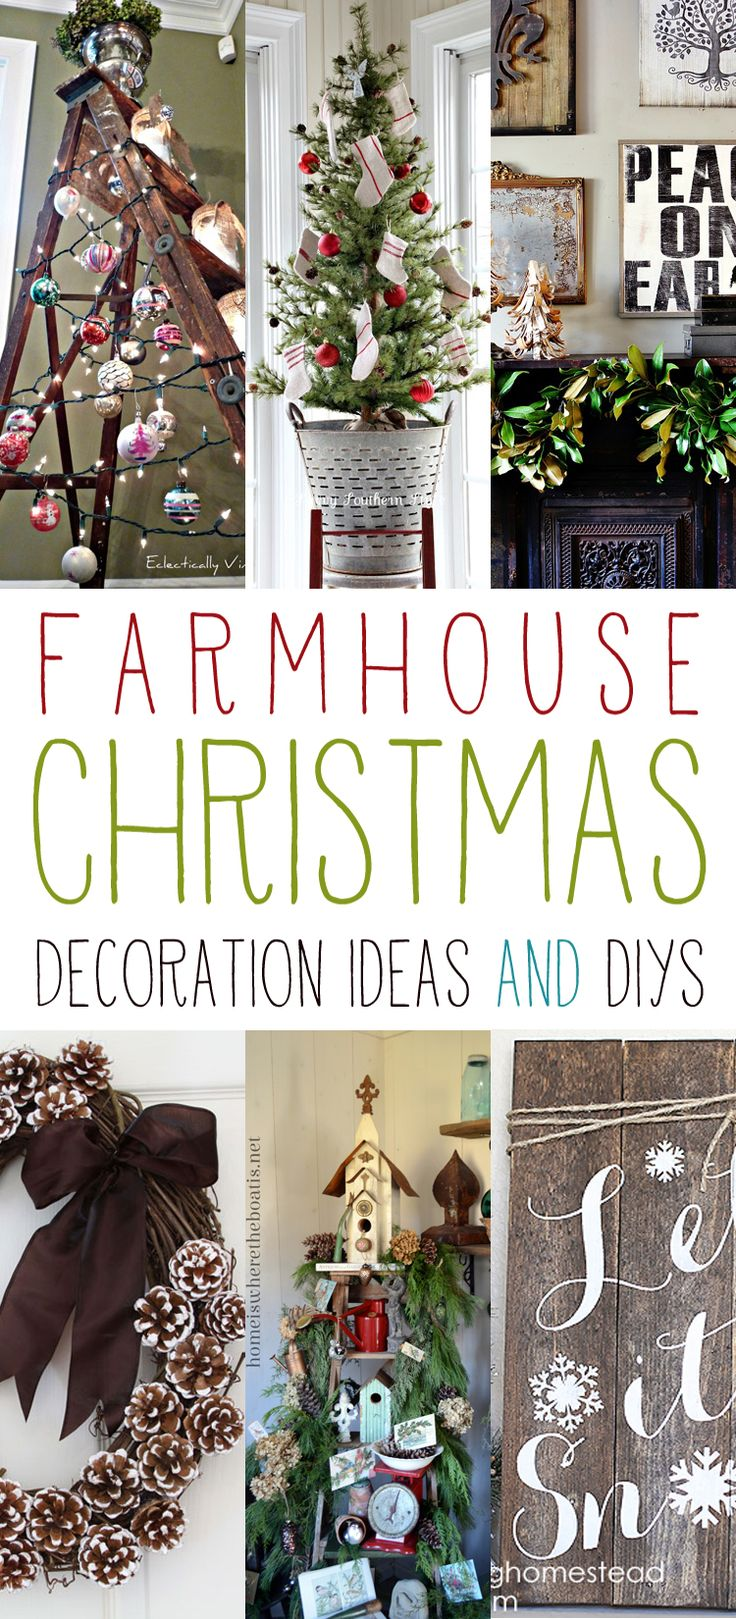 Farmhouse Christmas Decorations Ideas and DIYS you are going to LOVE!!!